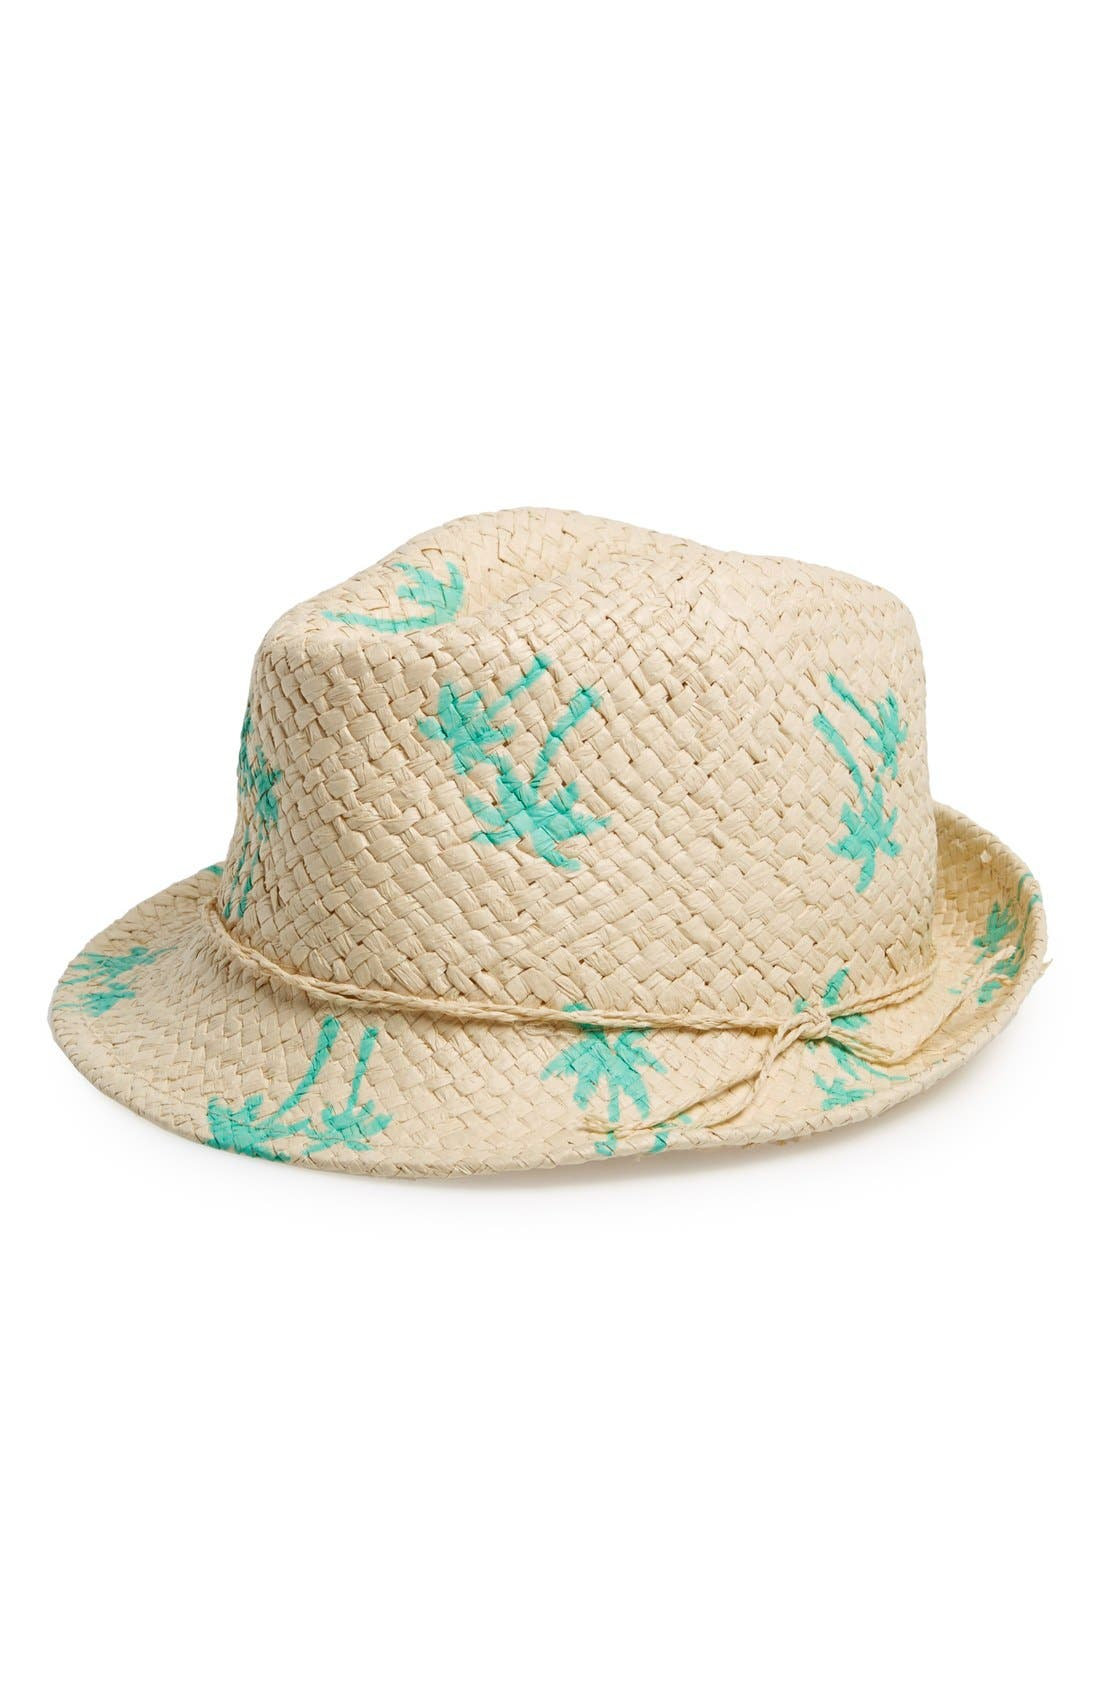 Main Image - David & Young Print Straw Fedora